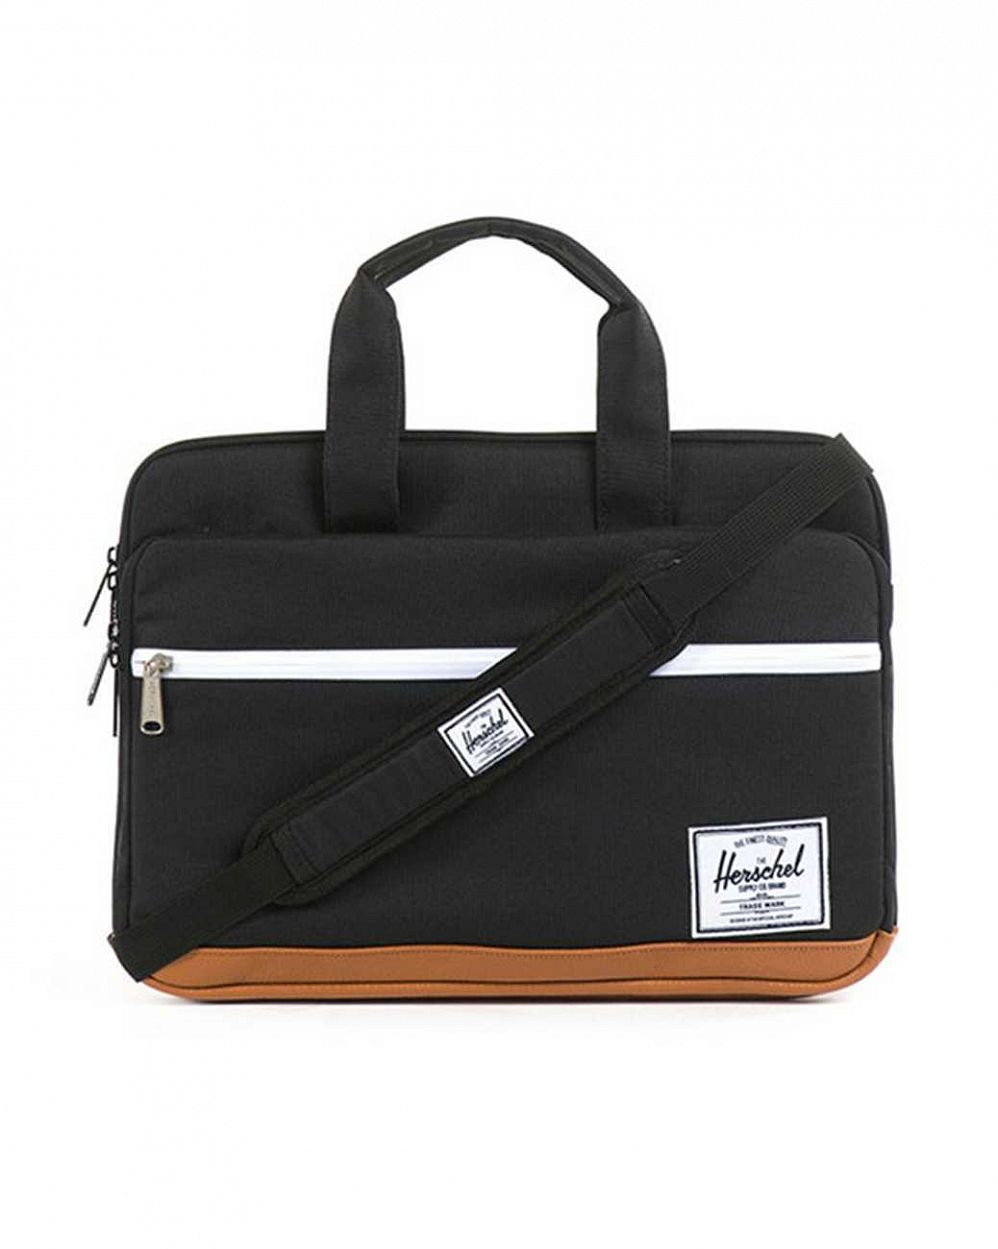 купить Сумка Herschel Pop Quiz Carry All для 13'' Macbook Black в Москве